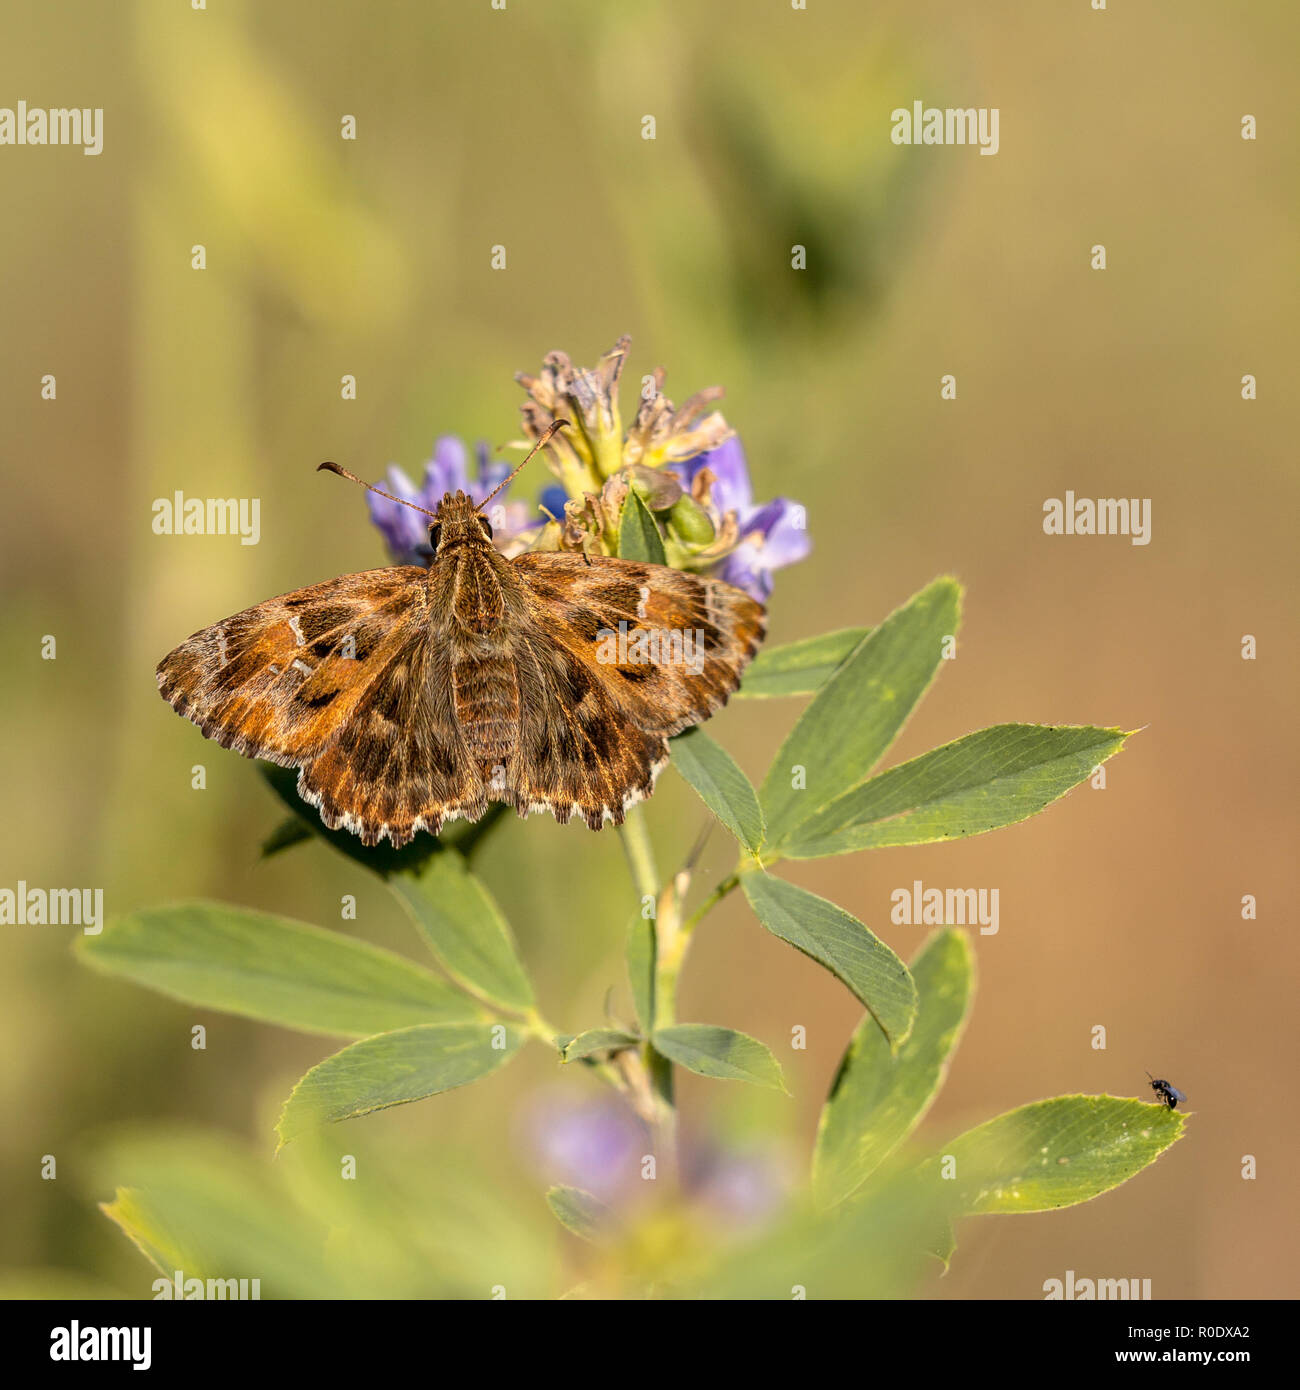 The Mallow Skipper (Carcharodus alceae) is a butterfly of the family Hesperiidae. It is found in Southern and Central Europe, northern Africa, and in  - Stock Image